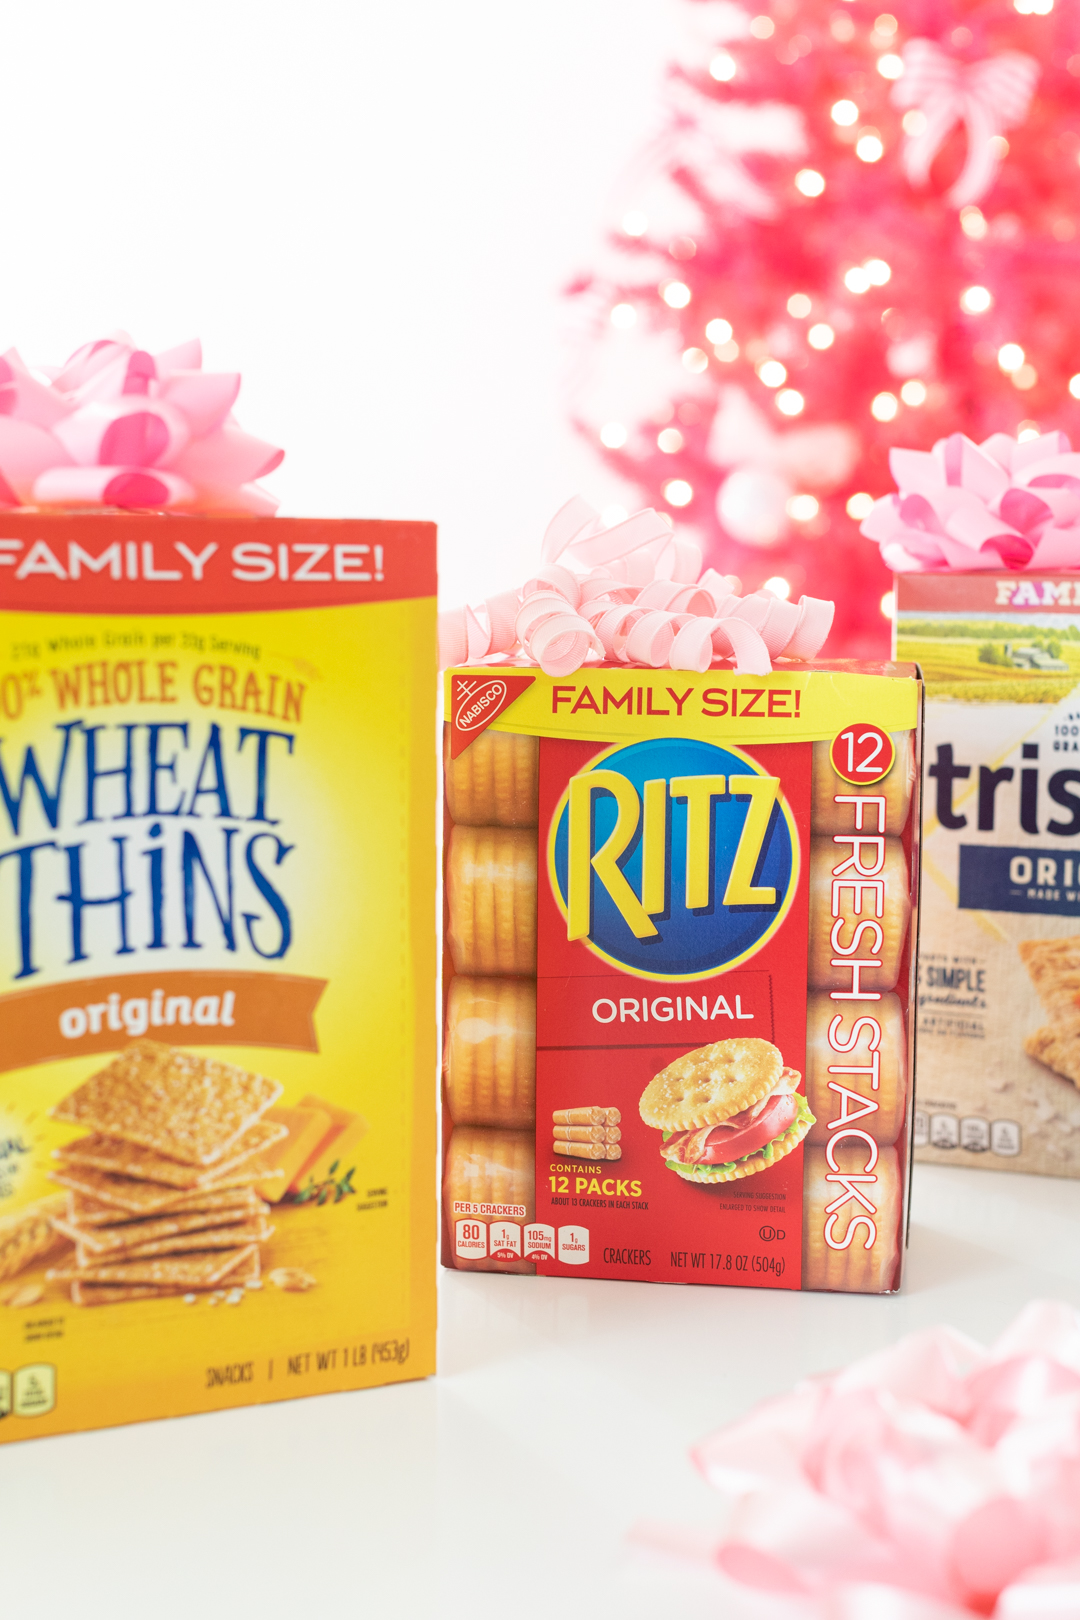 Family Sized Boxes of Wheat Thins, Ritz and Triscuits